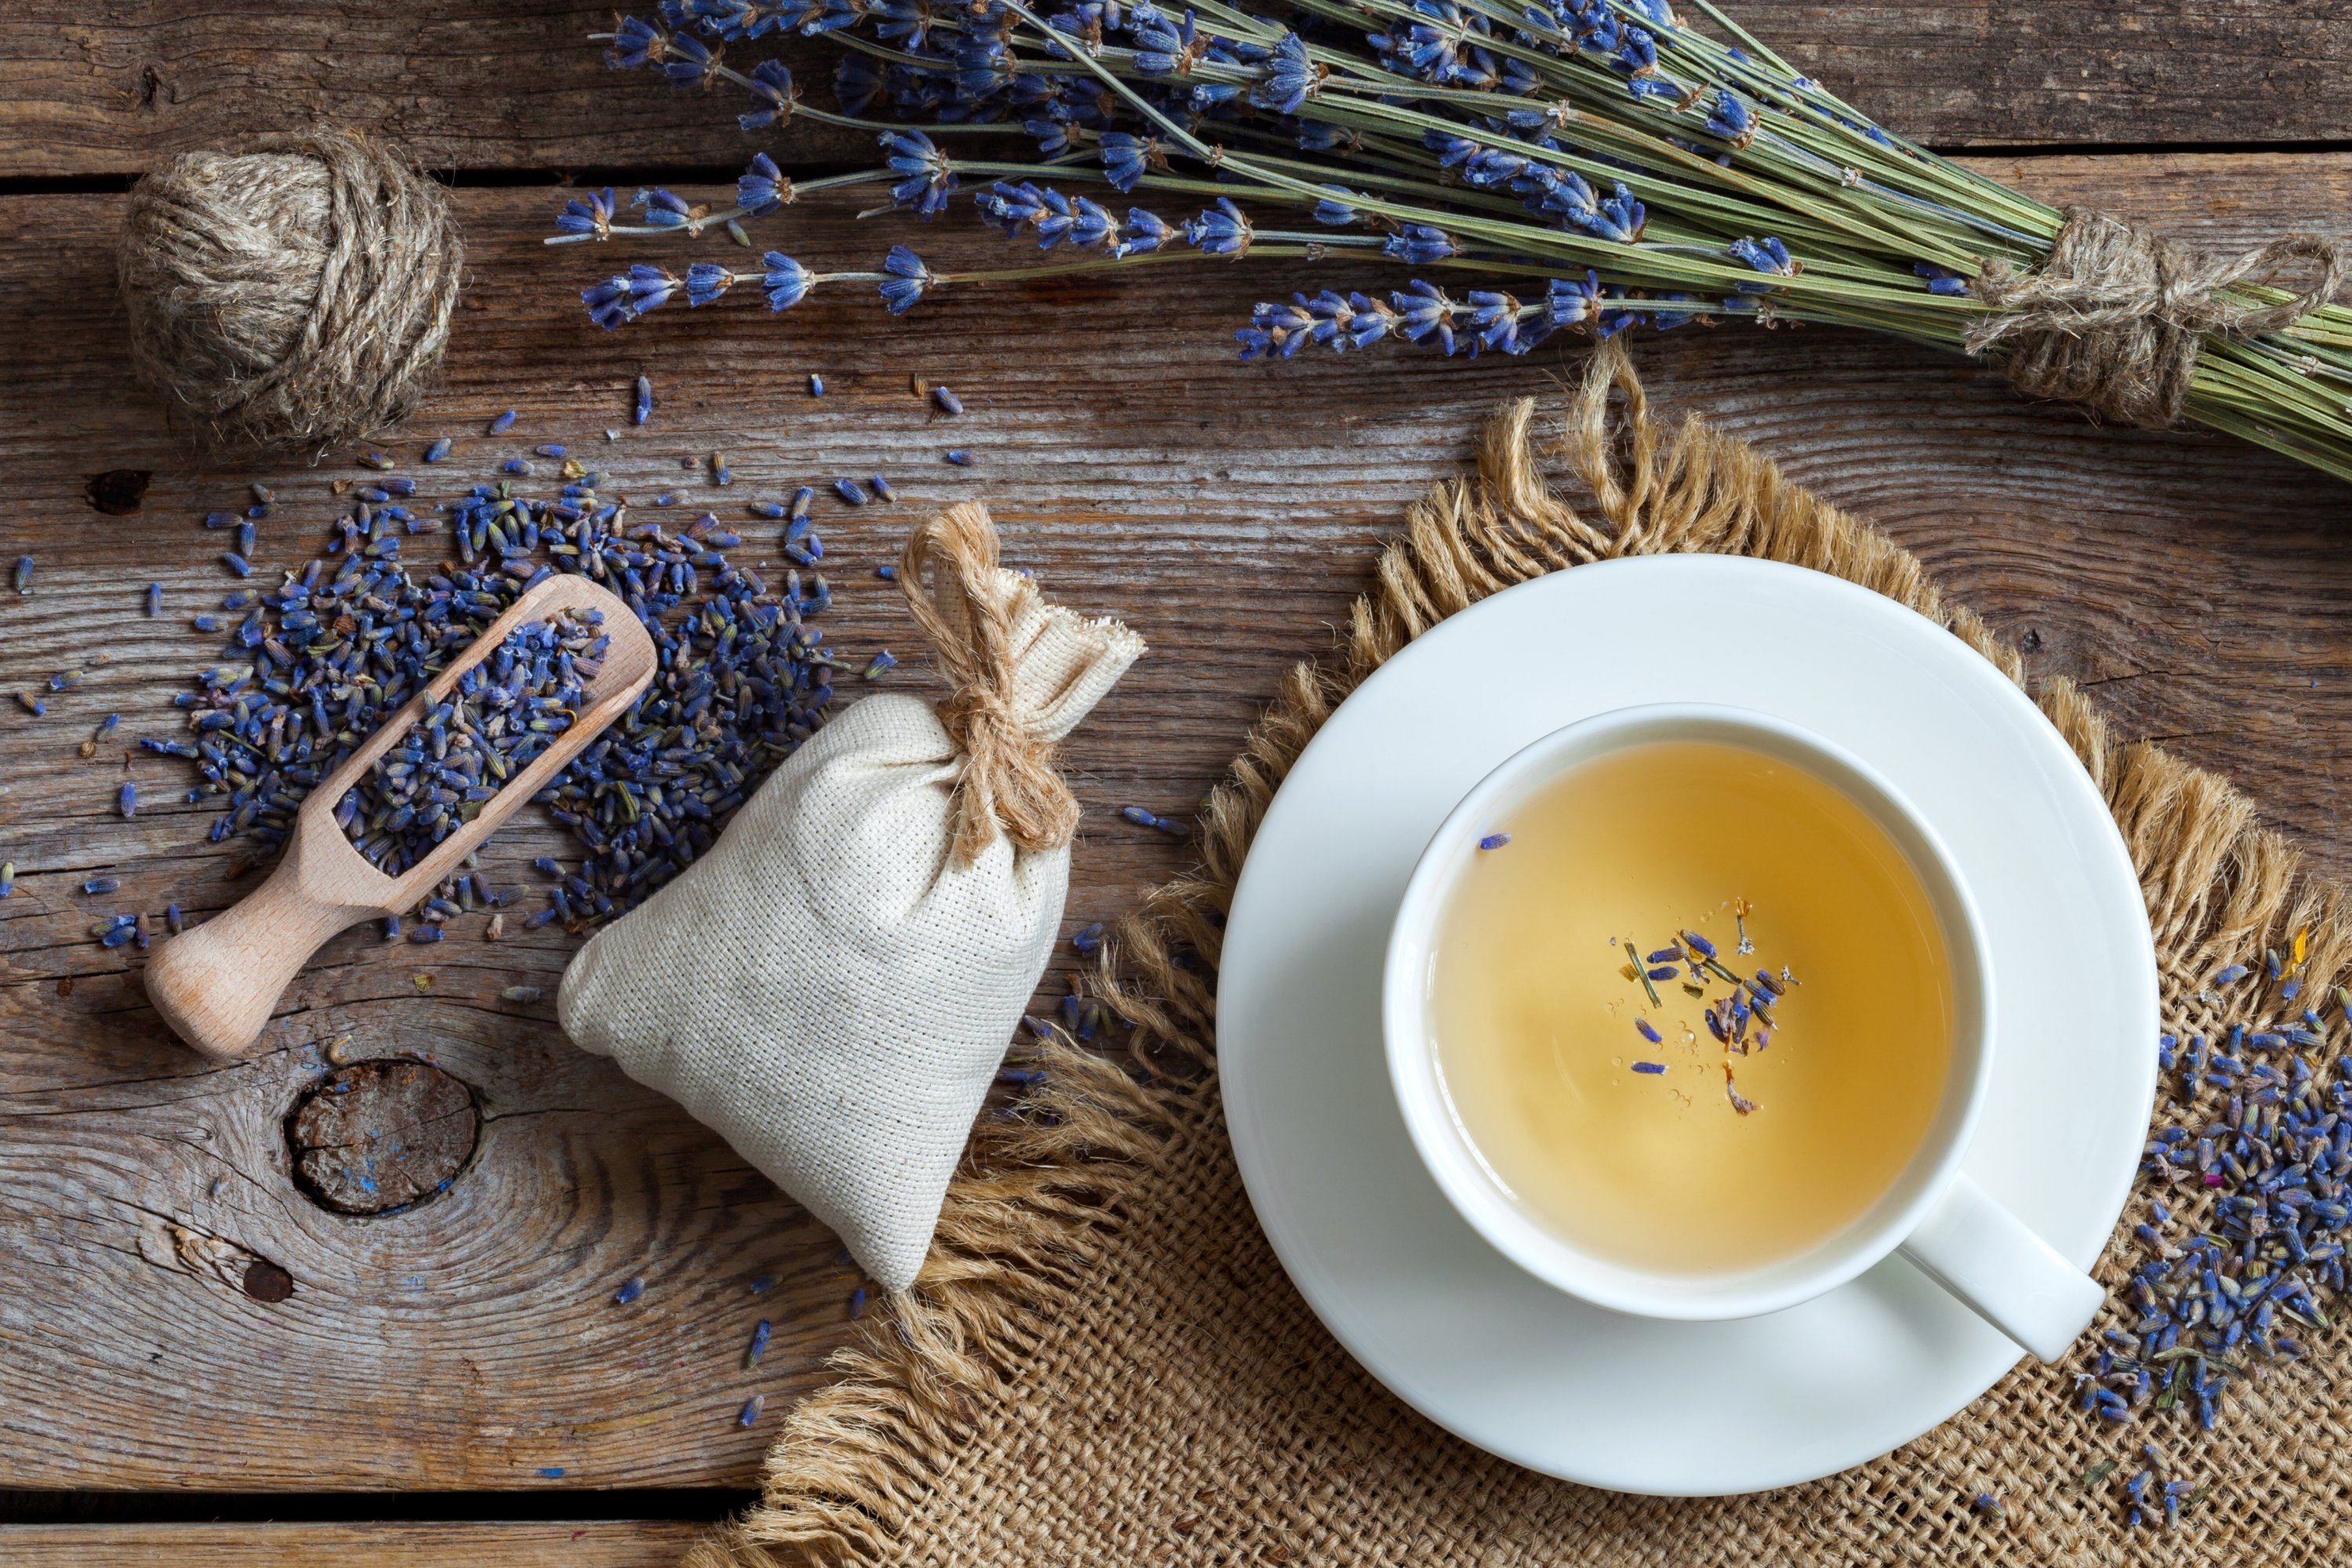 Karabaş, or French lavender, tea is great to soothe an upset stomach. (Shutterstock Photo)